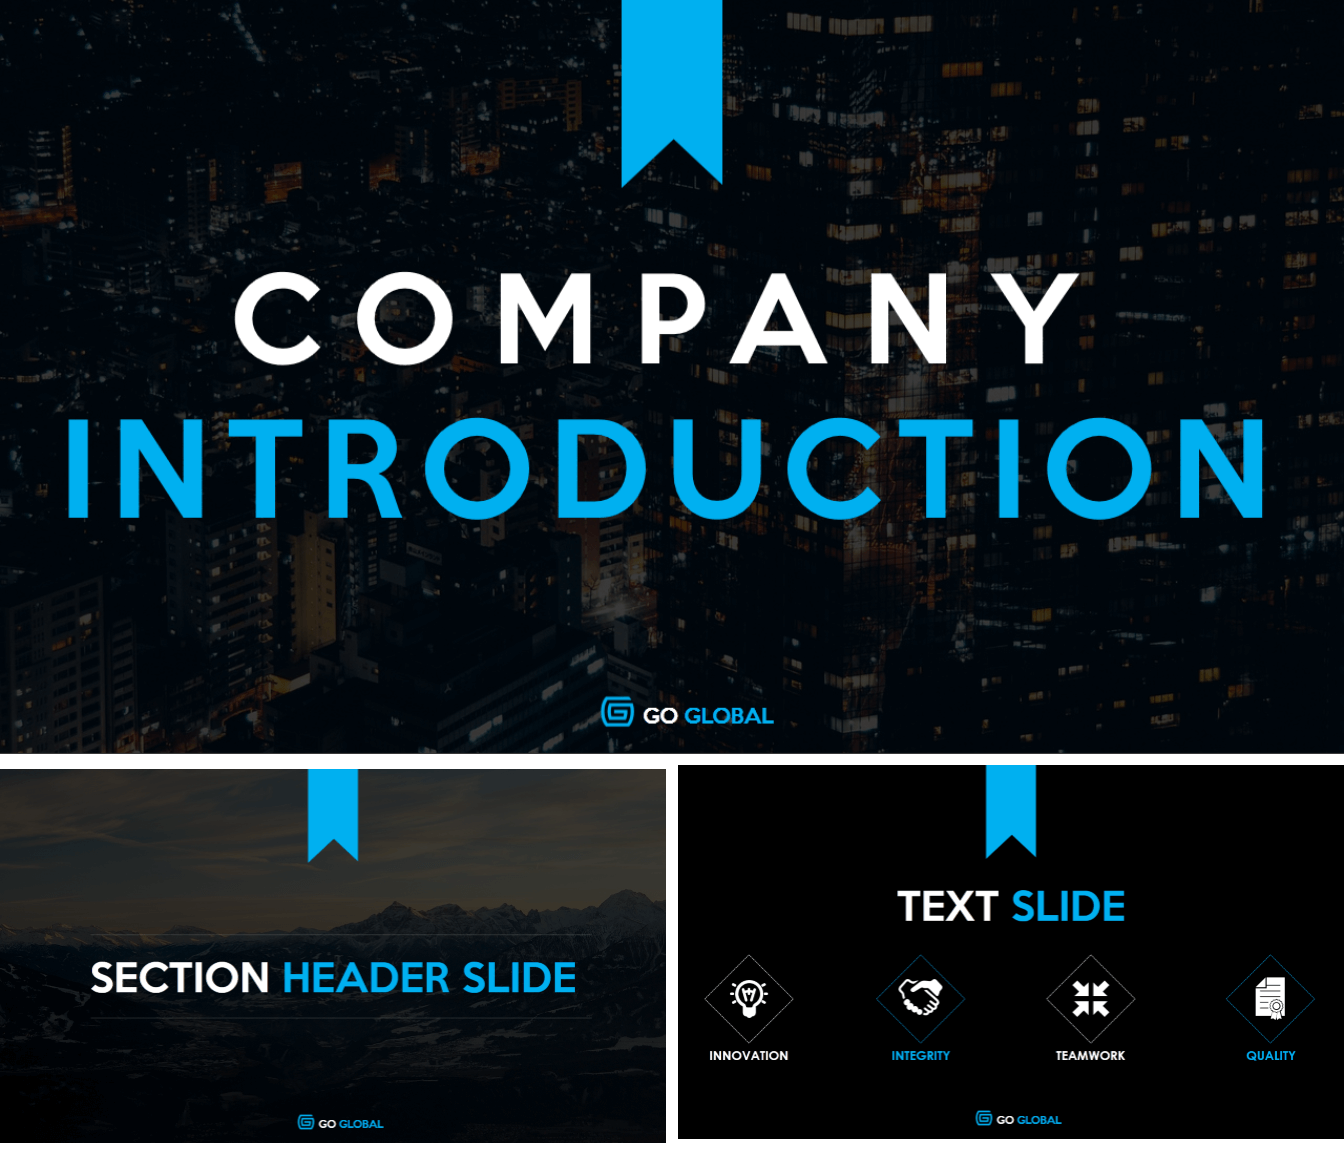 7 amazing powerpoint template designs for your company or personal how to create this template in powerpoint alramifo Choice Image